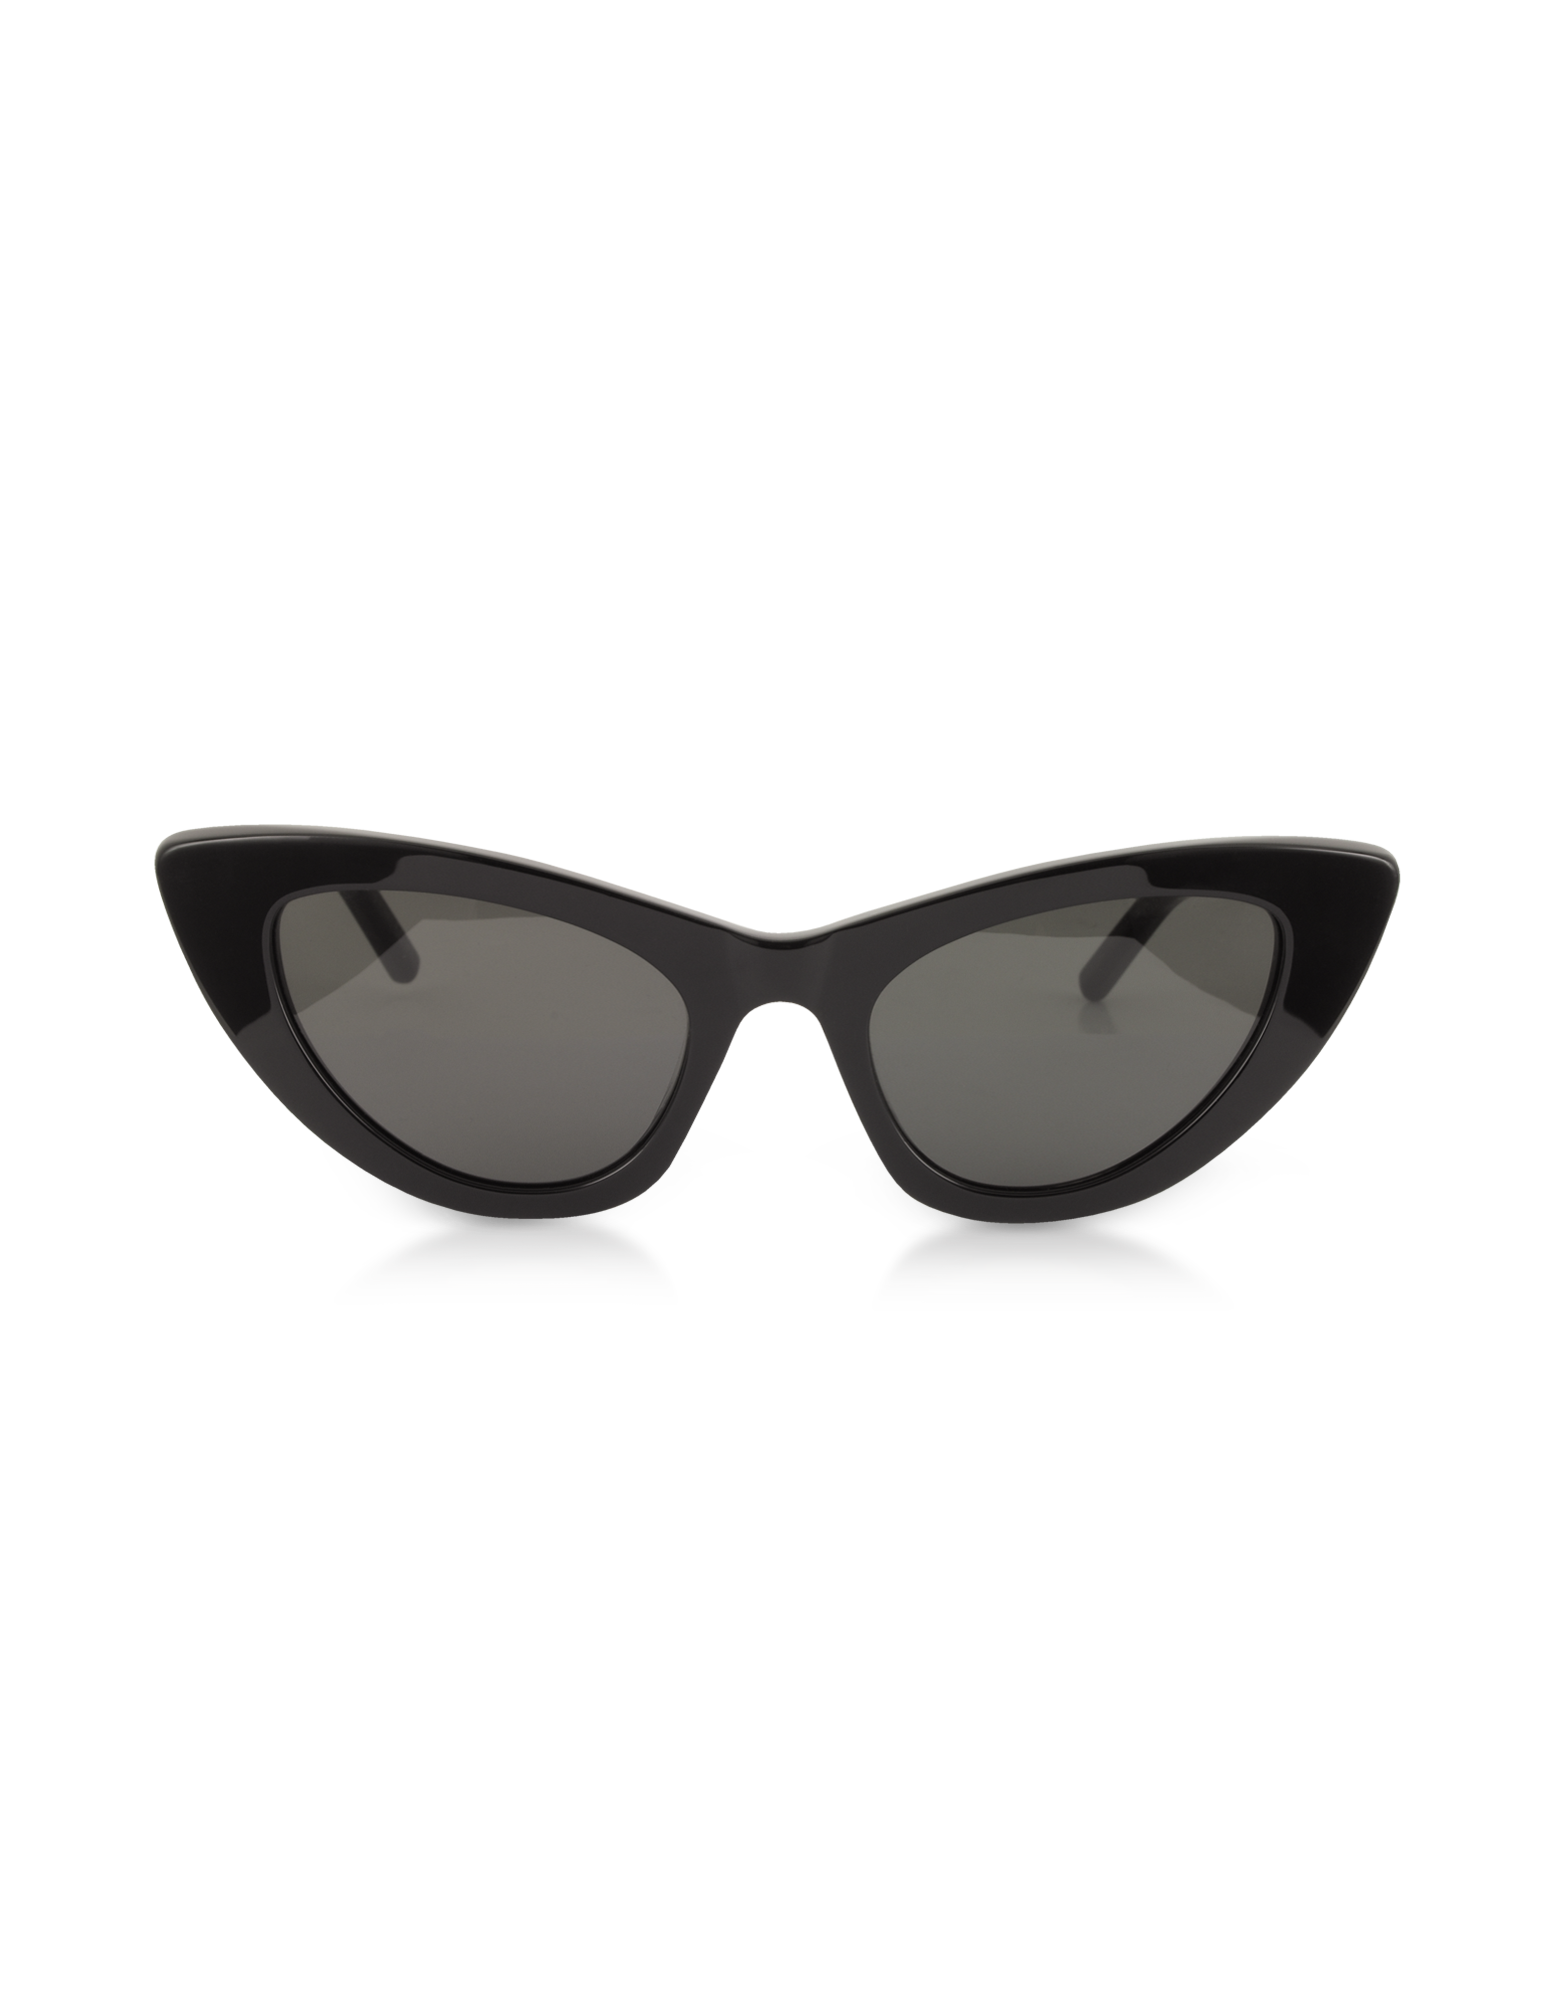 Image of 213 LILY Cat-Eye Sunglasses